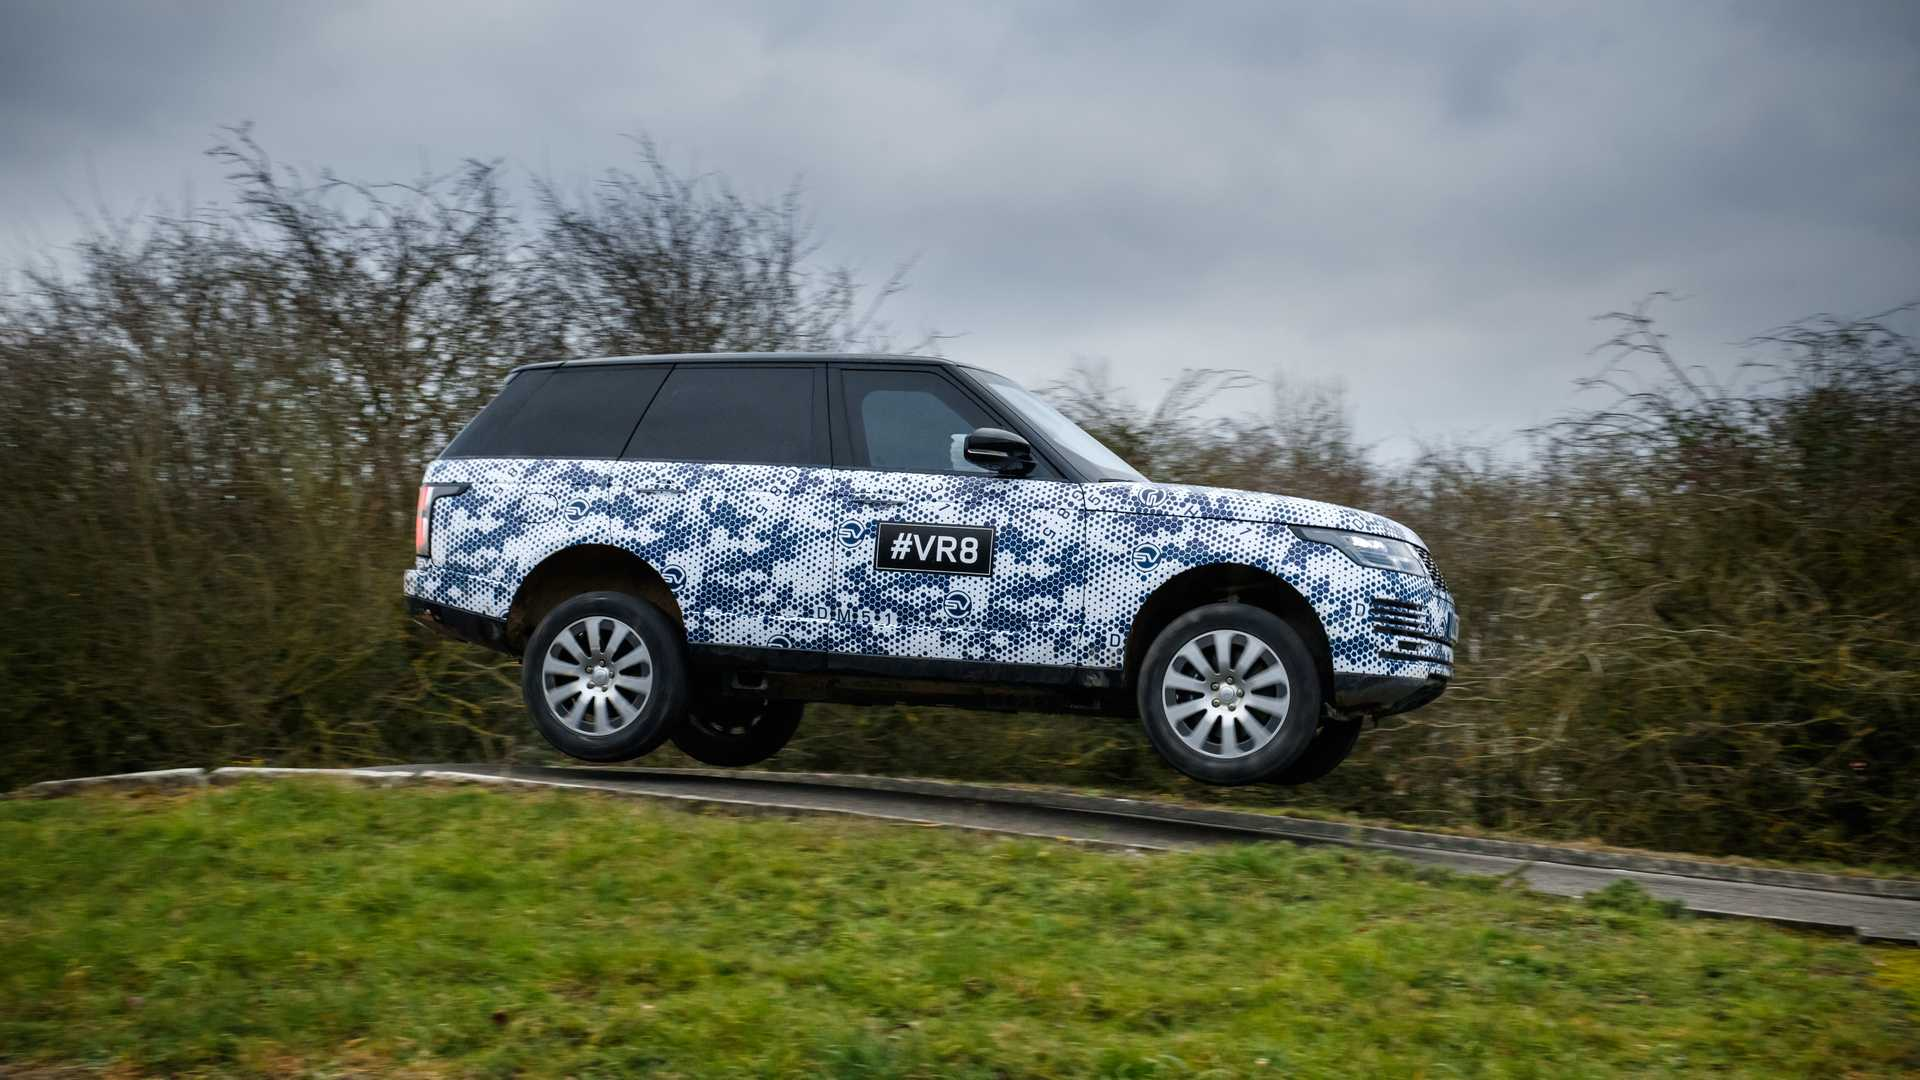 2019 Range Rover Sentinel Armored Vehicle Testing Wallpapers (10)